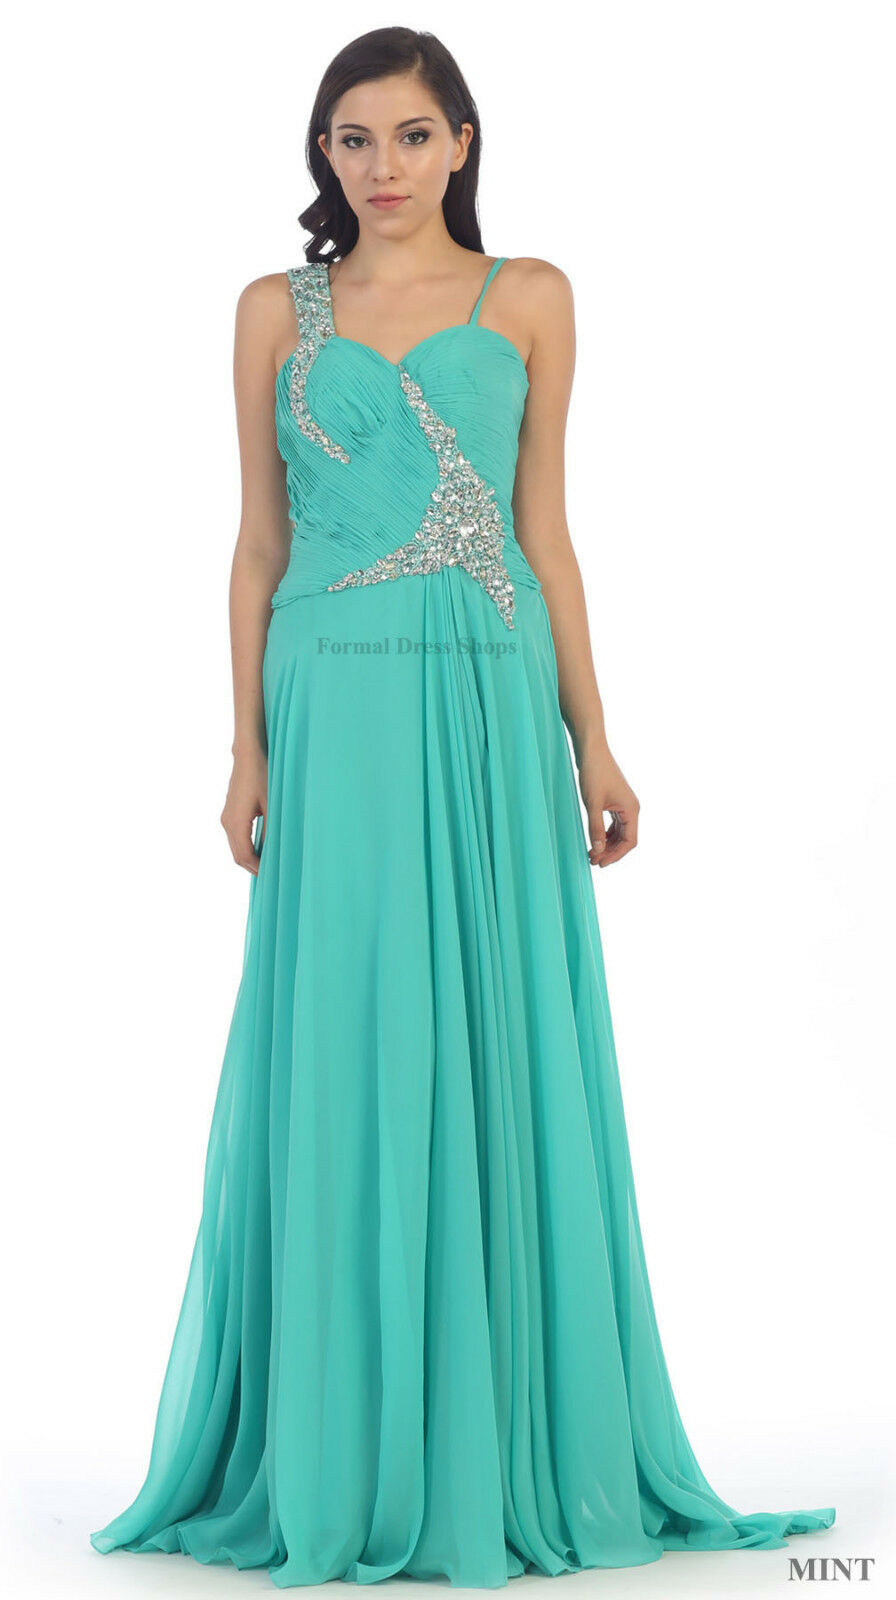 SALE !! PROM EVENING DRESS UNDER $100 LONG FORMAL SPECIAL ...